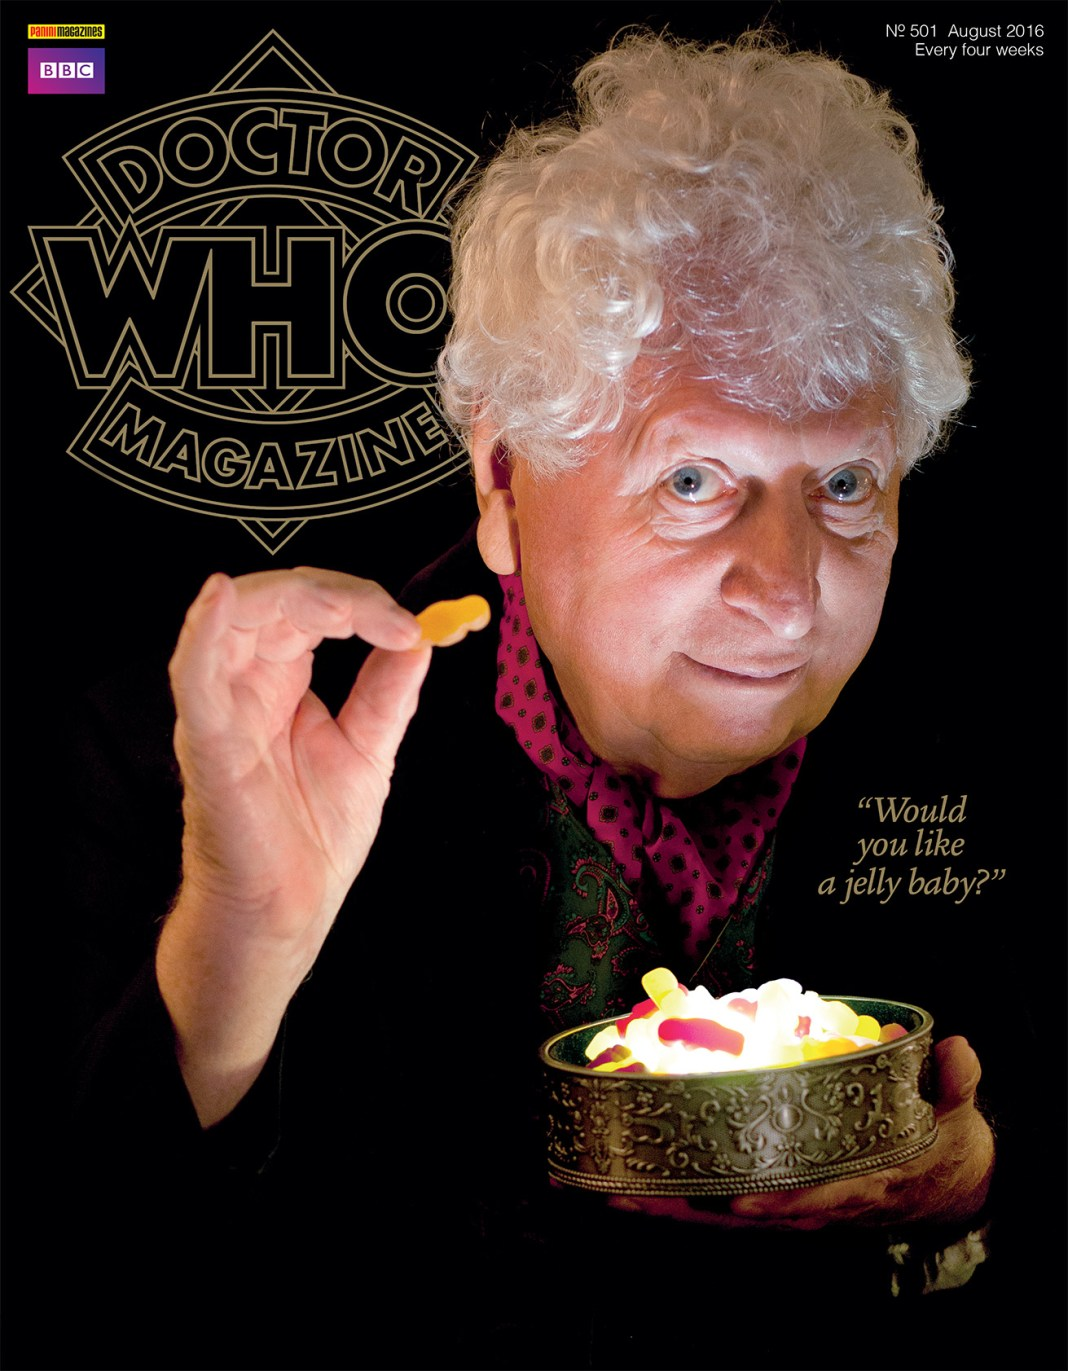 DWM 501 - Tom Baker Photo © Oliver McNeil http://www.theworldoflegend.com